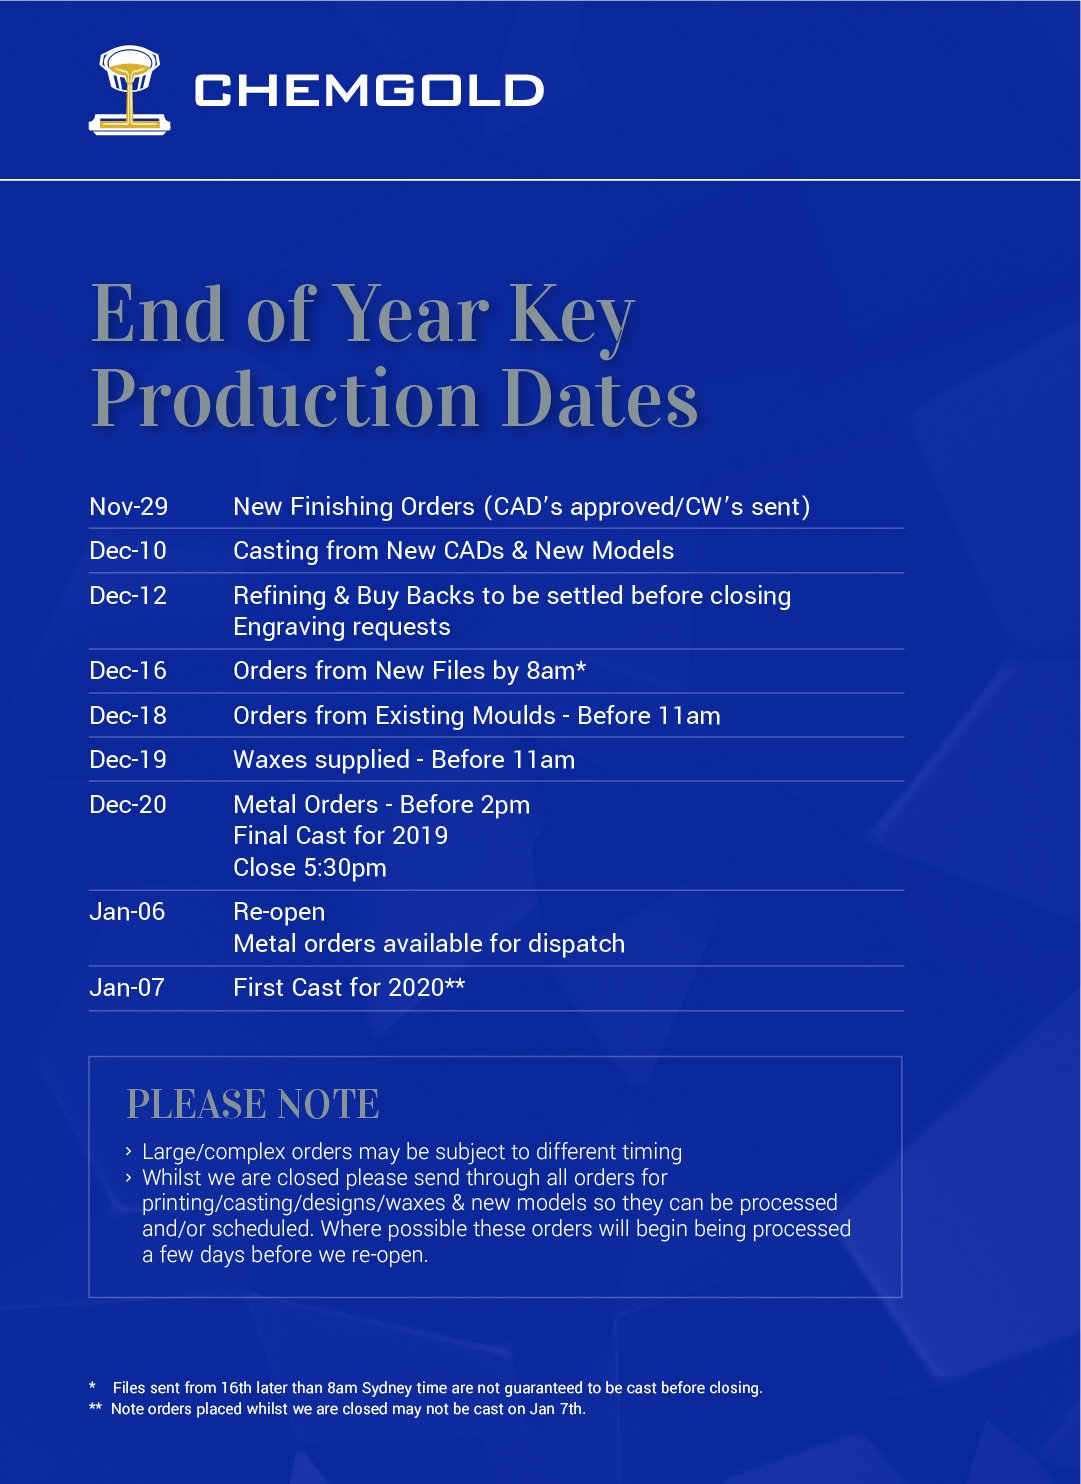 End of Year Key Production Dates